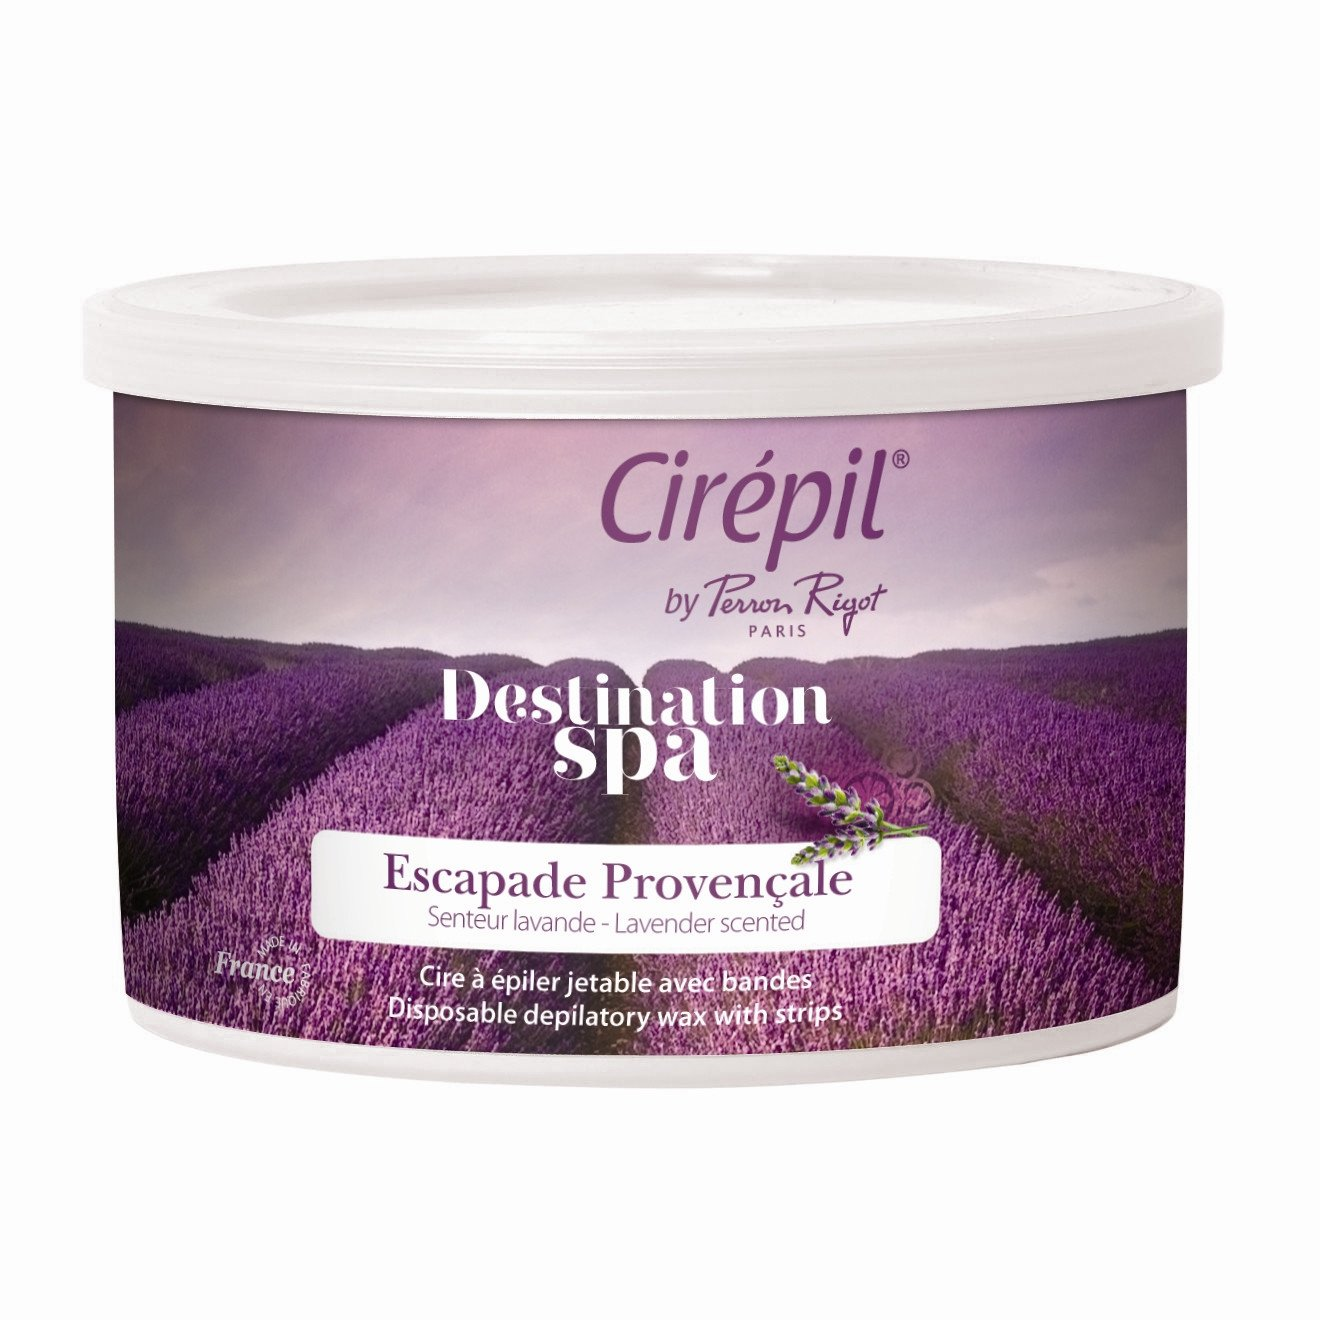 Cirepil Destination Spa Escapade Provencale (Lavender): 400g Tin